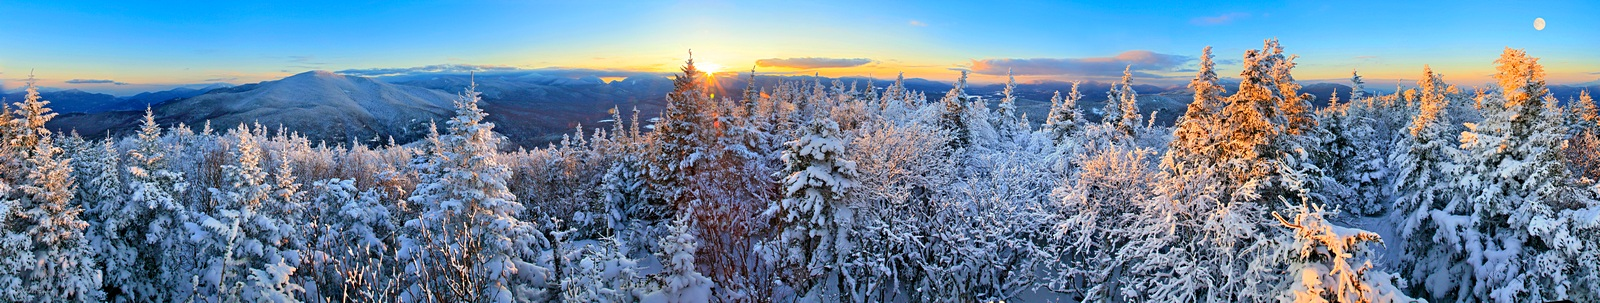 Pitchoff Mt, winter, 360,360 degree,panorama,treetop,Adirondack mountains,High Peaks,High Peaks range,Adirondacks,Cascade,Cascade Mt,, photo